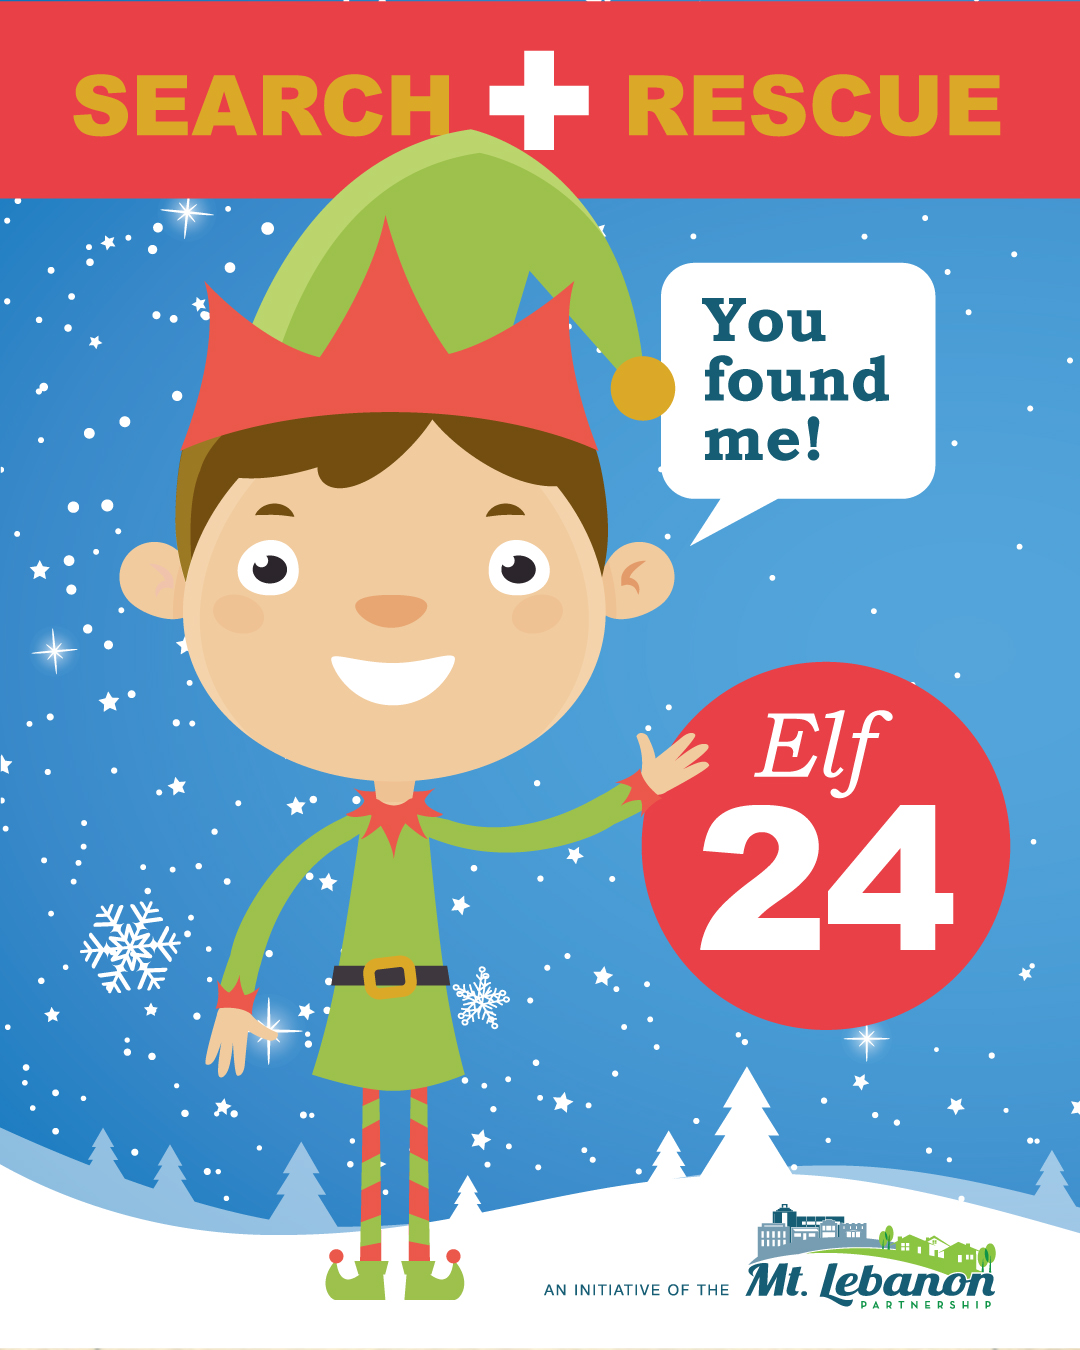 Can you find all the elves?